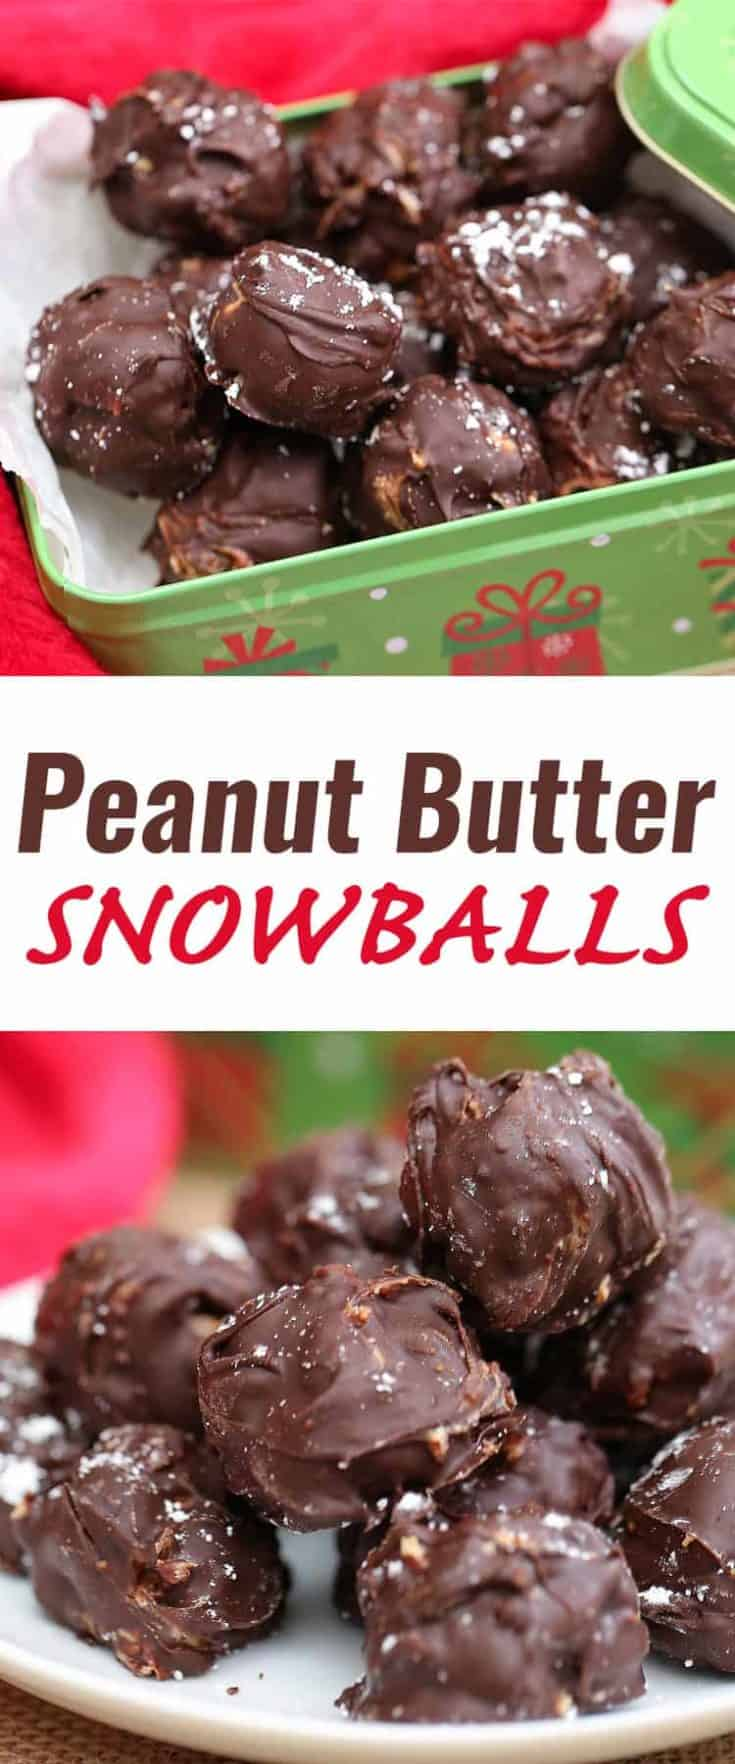 Peanut Butter Snowballs are a no-bake holiday recipe. It's a very easy recipe with few ingredients. Make for yourself, for a holiday treat exchange or for gifting #snowballs #holidaybaking #christmas #nobake